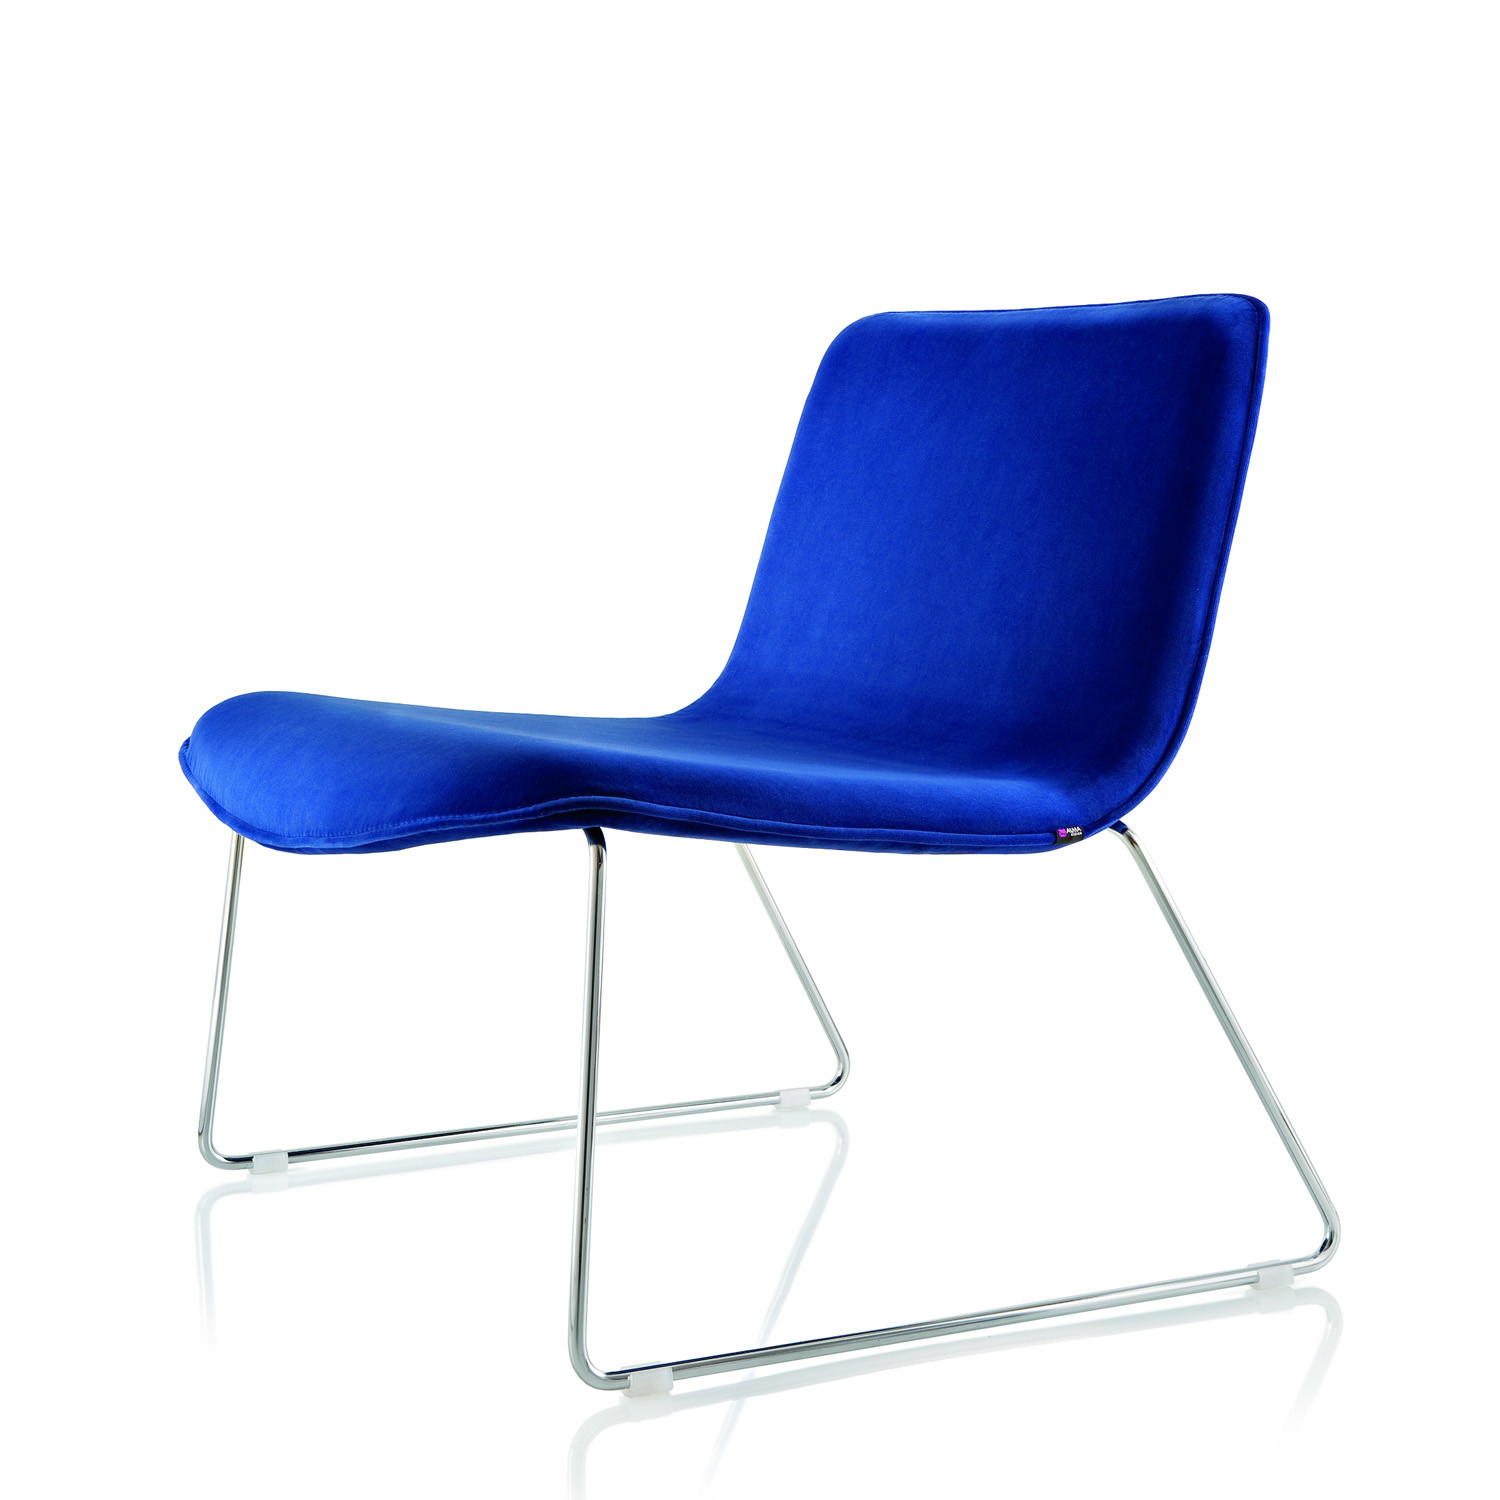 Amarcord Lounge Chair by Alma Design